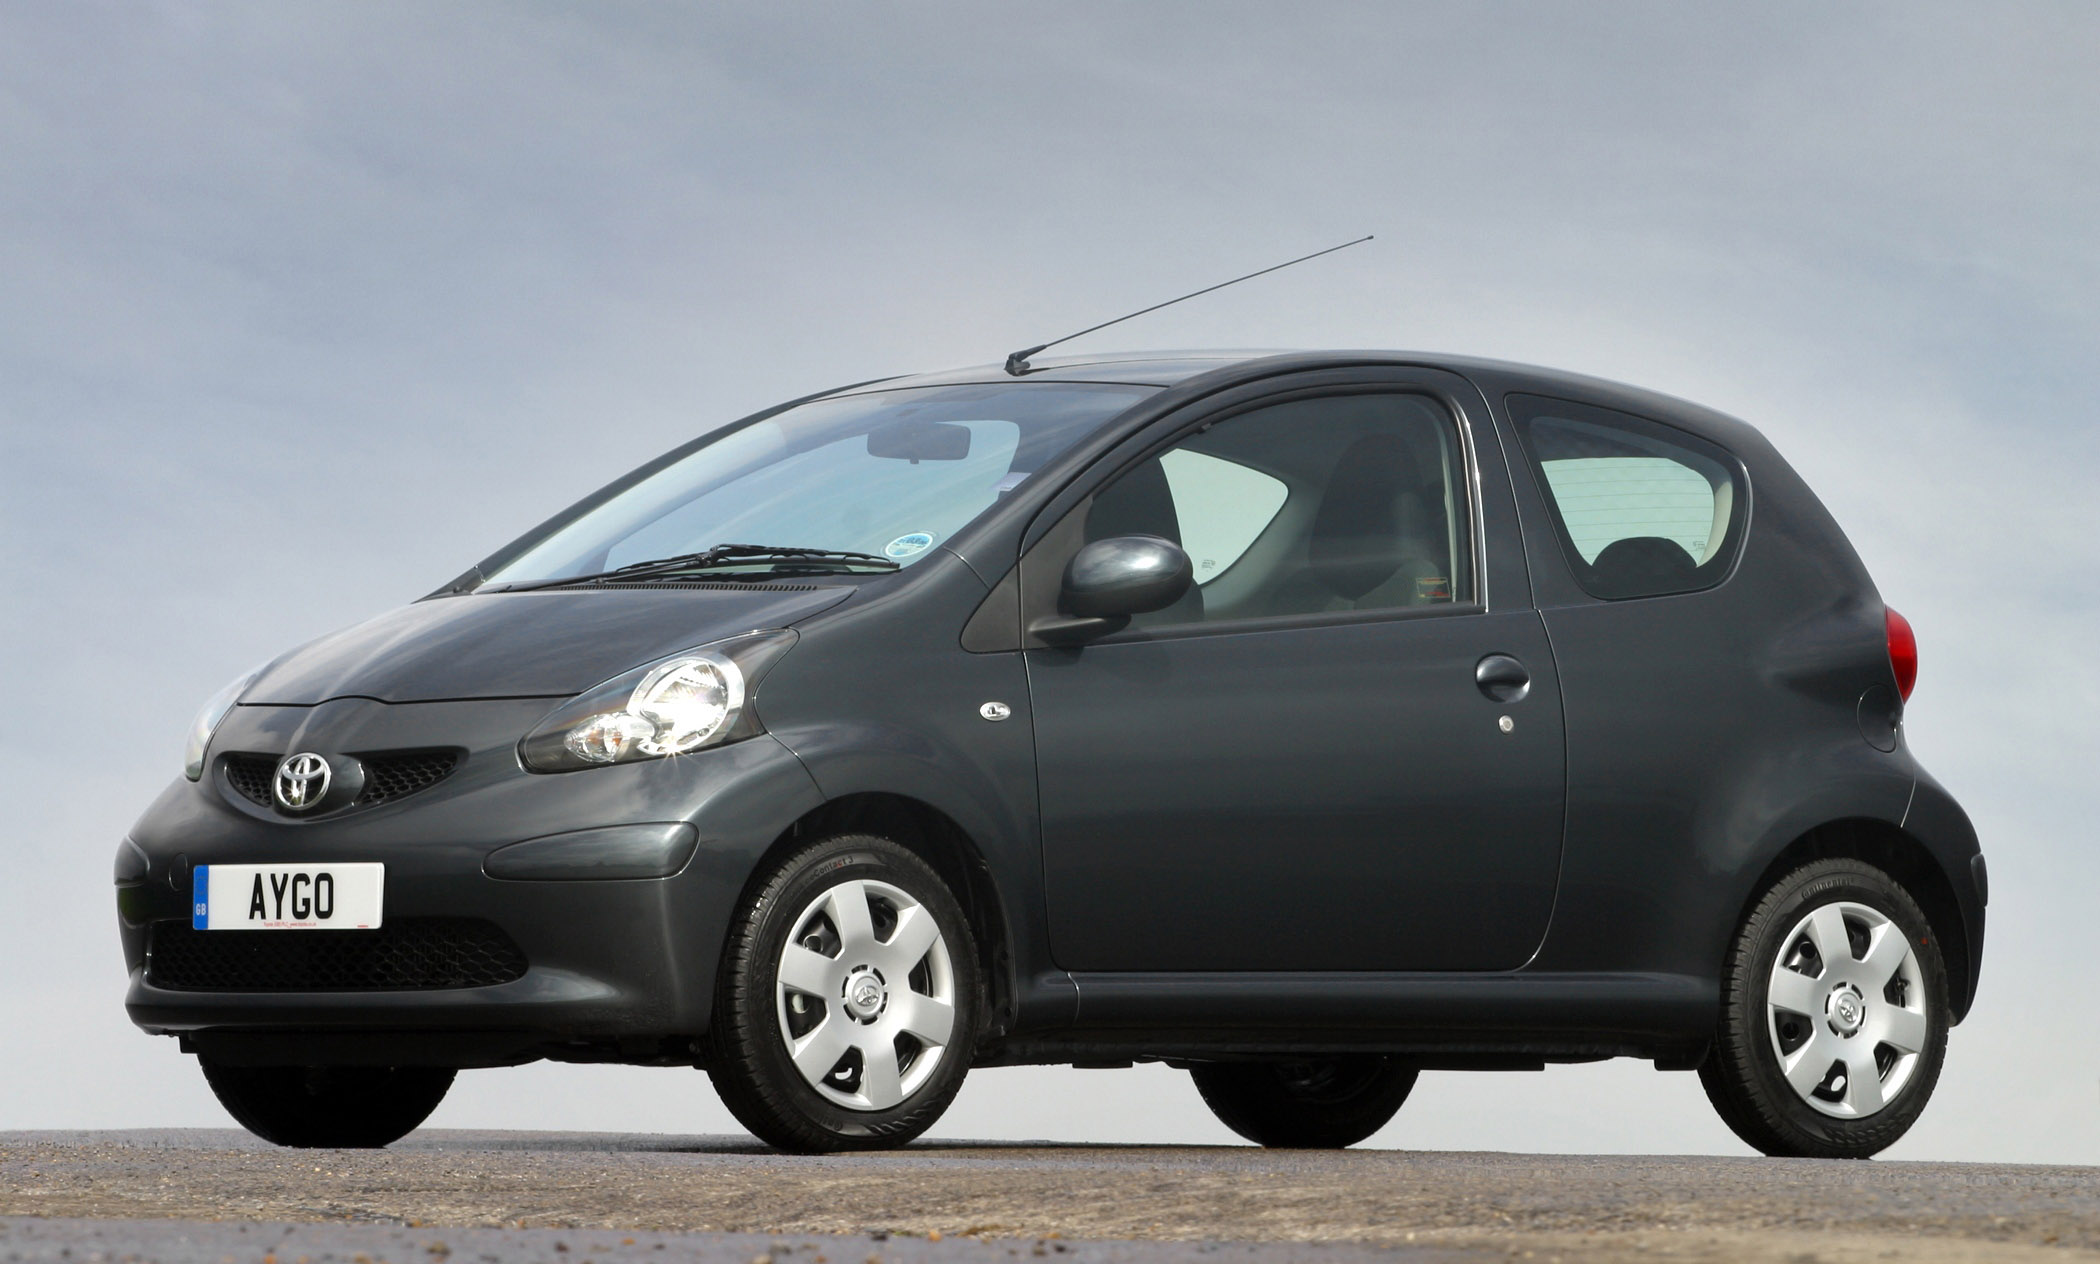 2005 Toyota Aygo Picture 77757